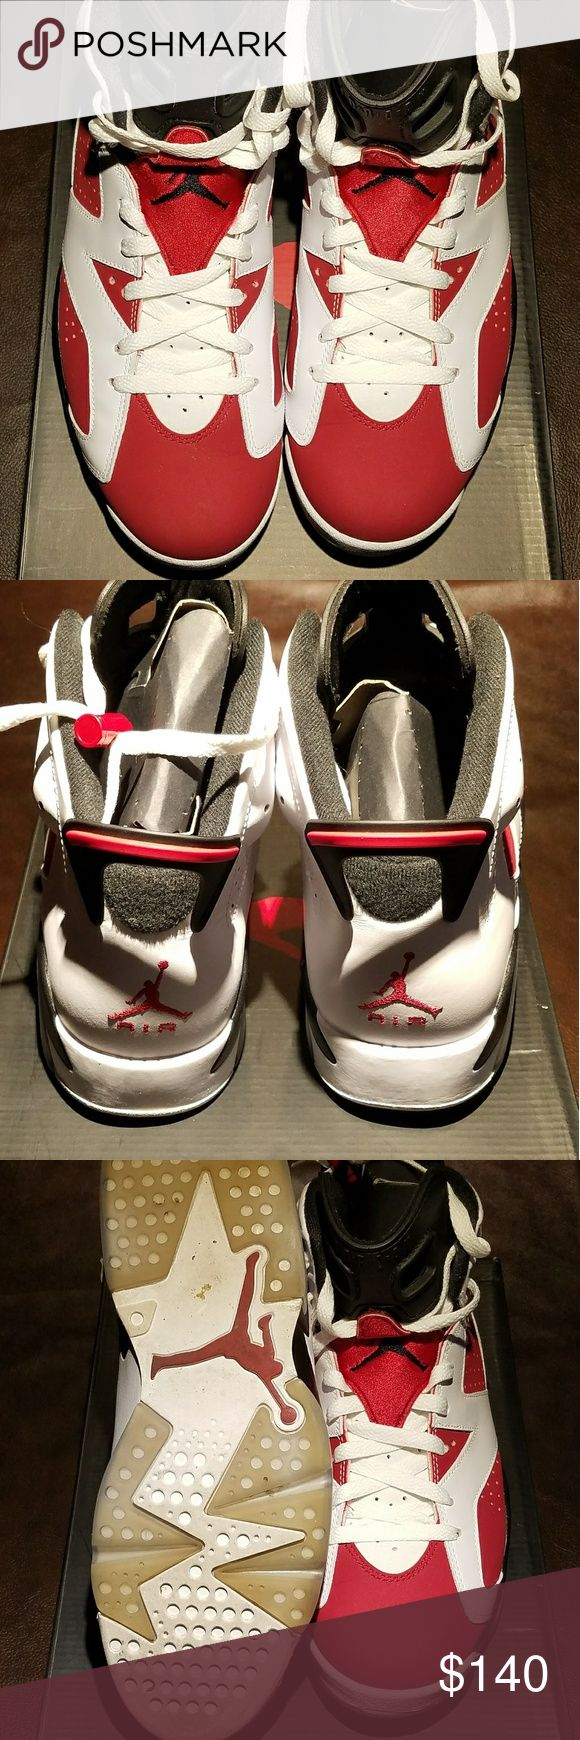 Retro Jordan VI Barely worn Retro Jordan VI Carmines. These Js are a 10.5 and were well kept with shoe stuffing in them during storage. Price is firm!! NO TRADES AND DEAL ONLY THRU POSH! Jordan Shoes Sneakers